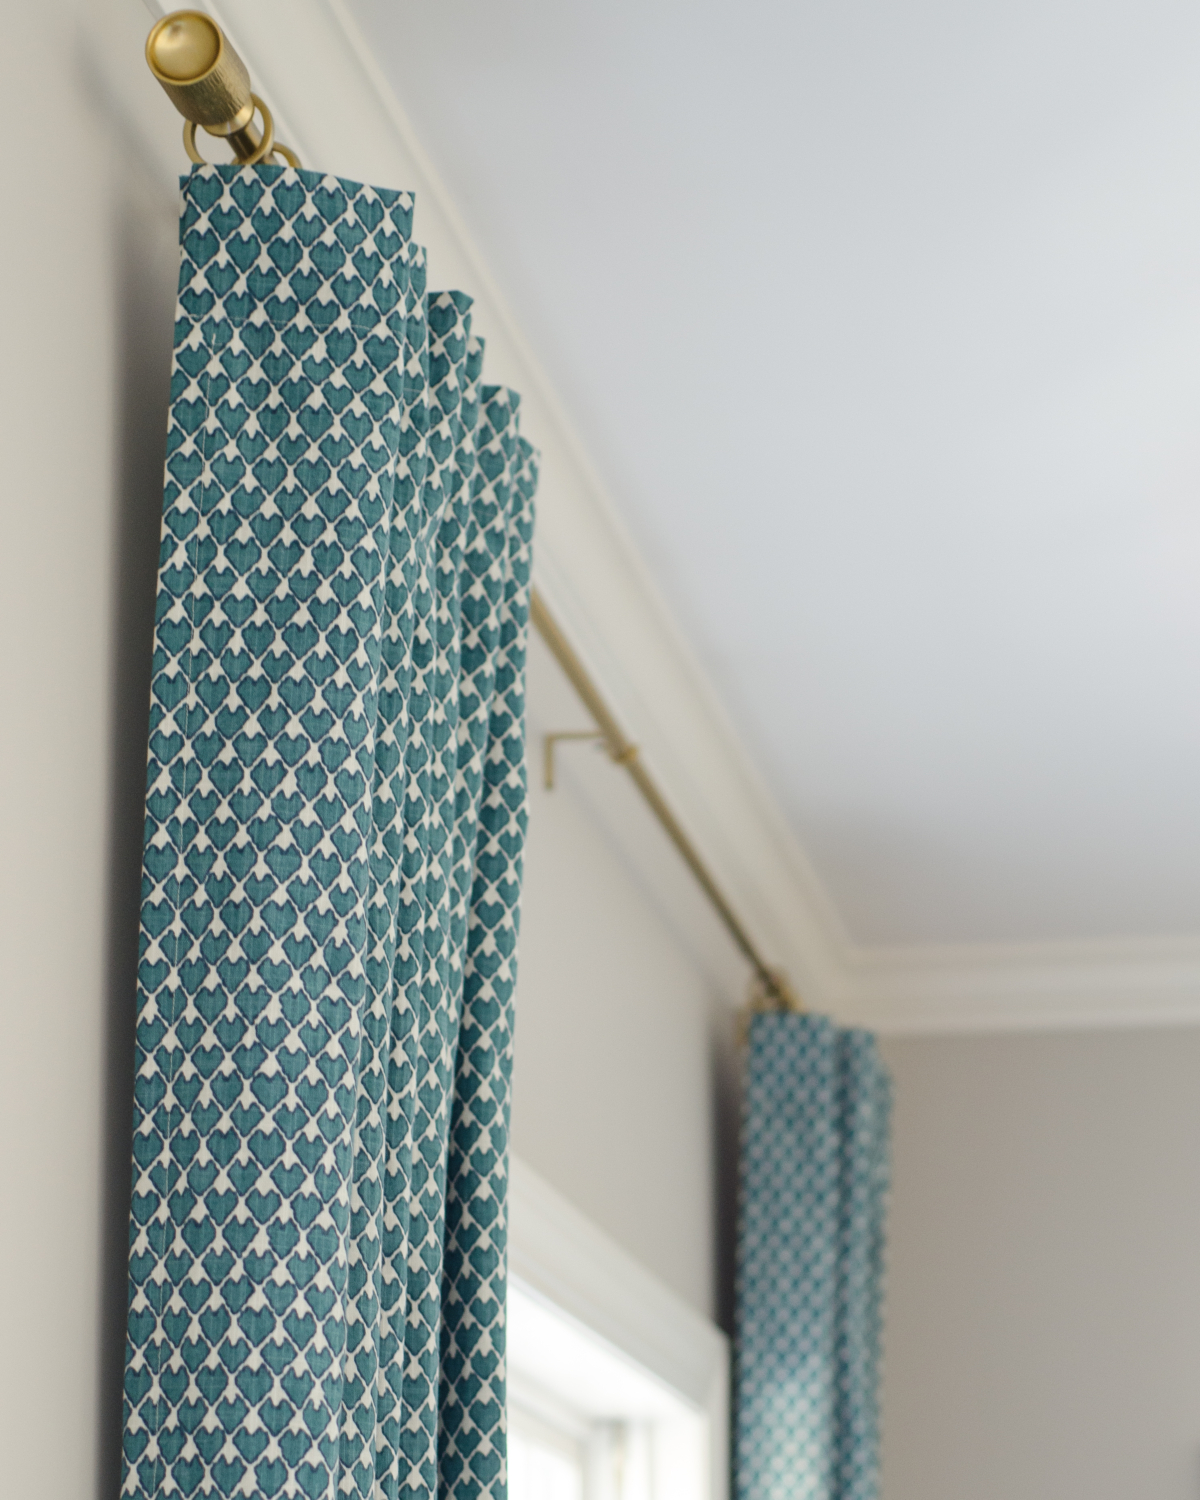 An easy-to-follow tutorial for how to sew curtains yourself. So simple and will save you TONS of money!